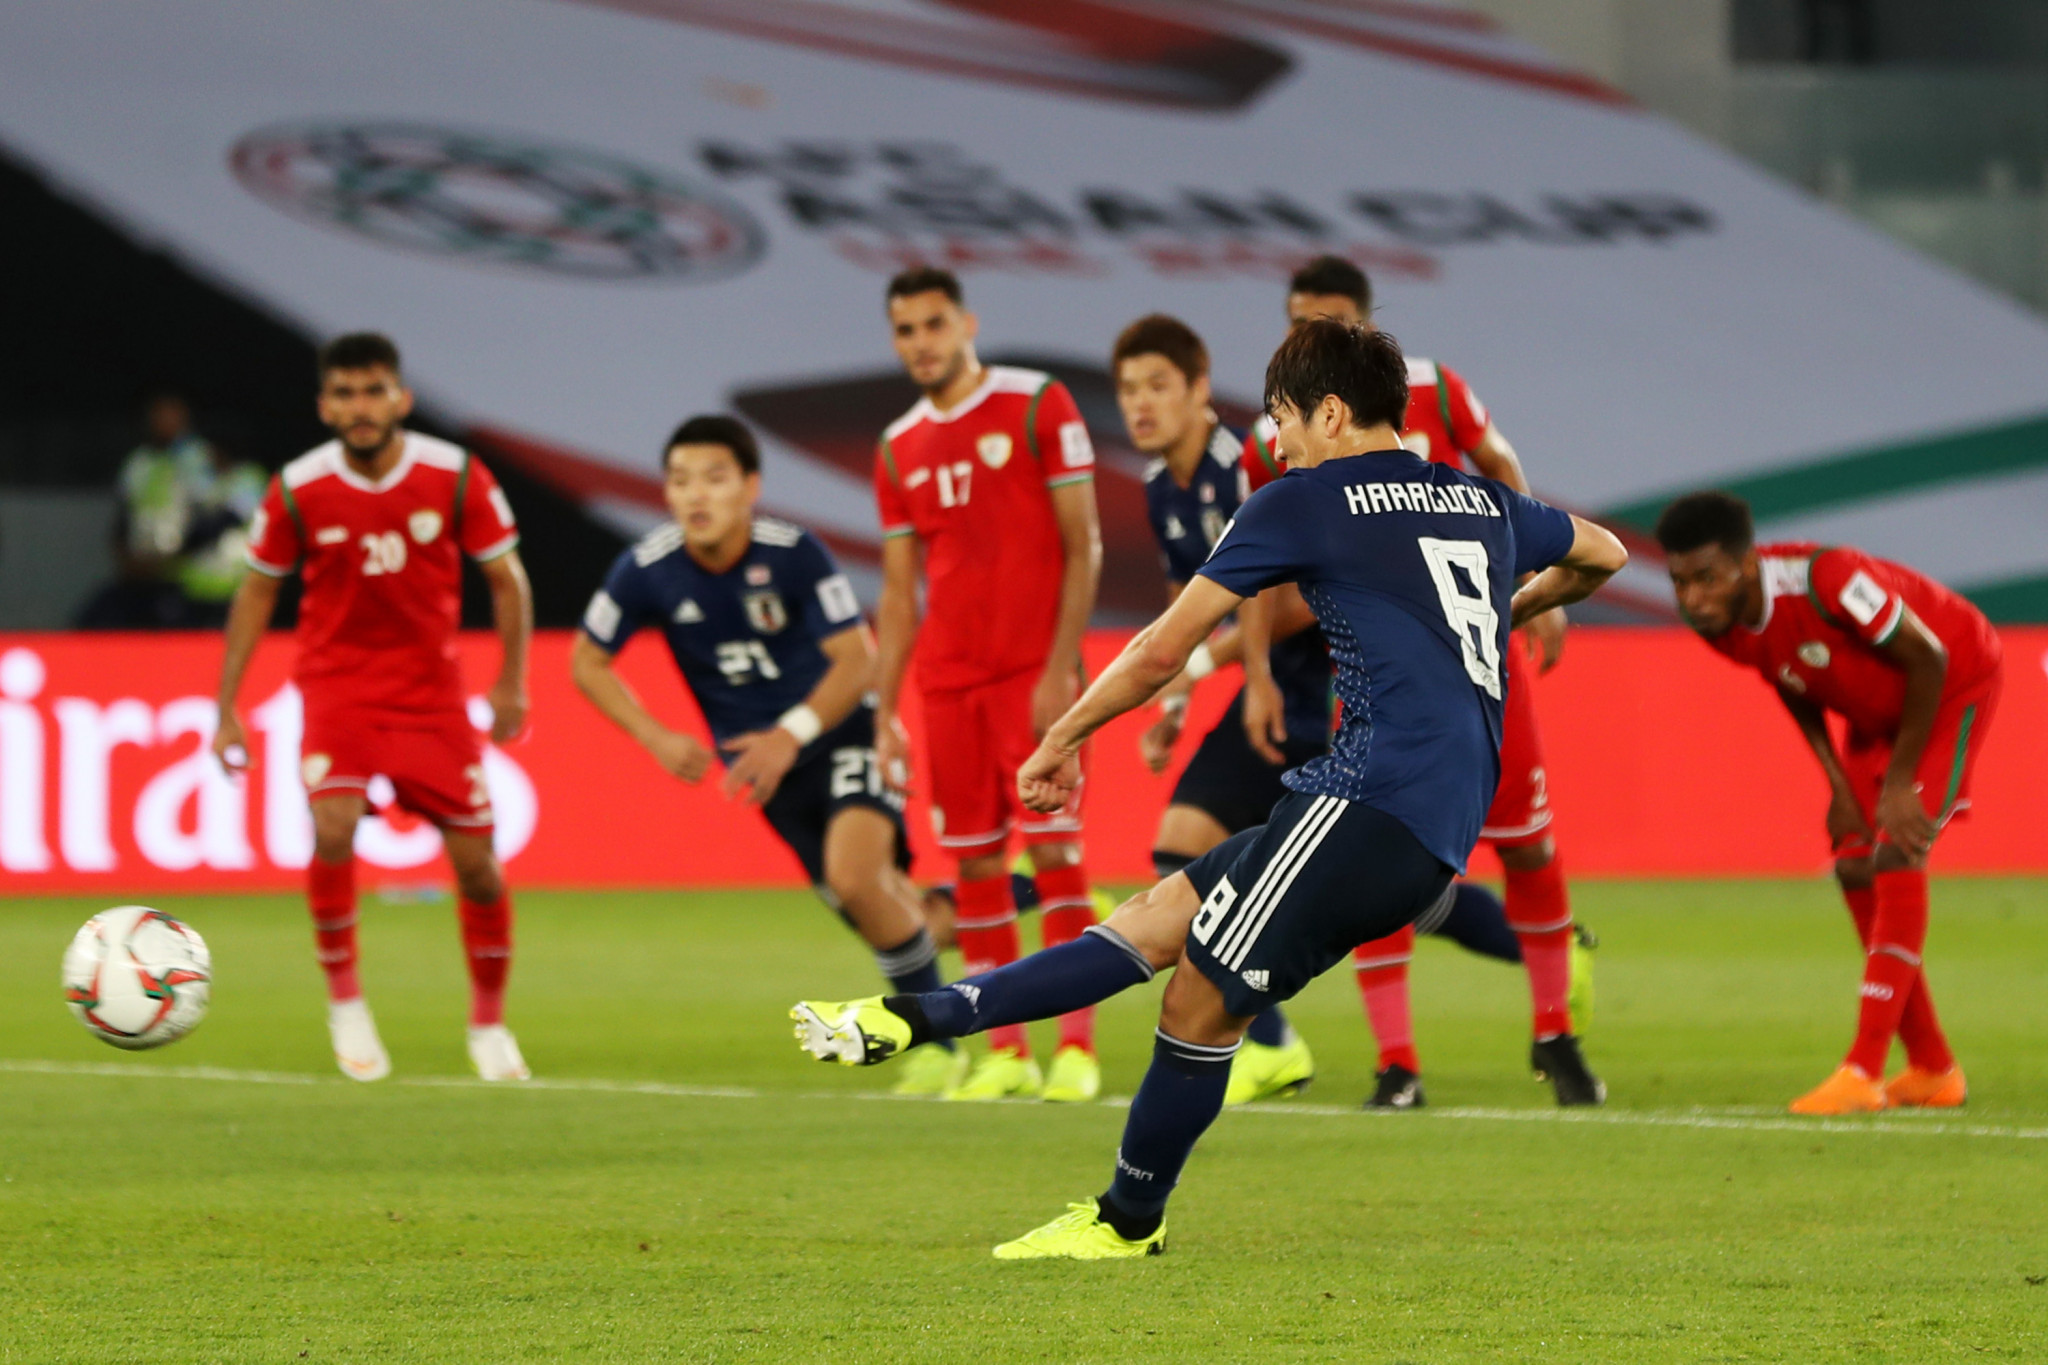 Genki Haraguchi scored a penalty for Japan in their 1-0 victory over Oman, although replays suggest the referee's decision to give the spot kick may have been wrong ©Getty Images